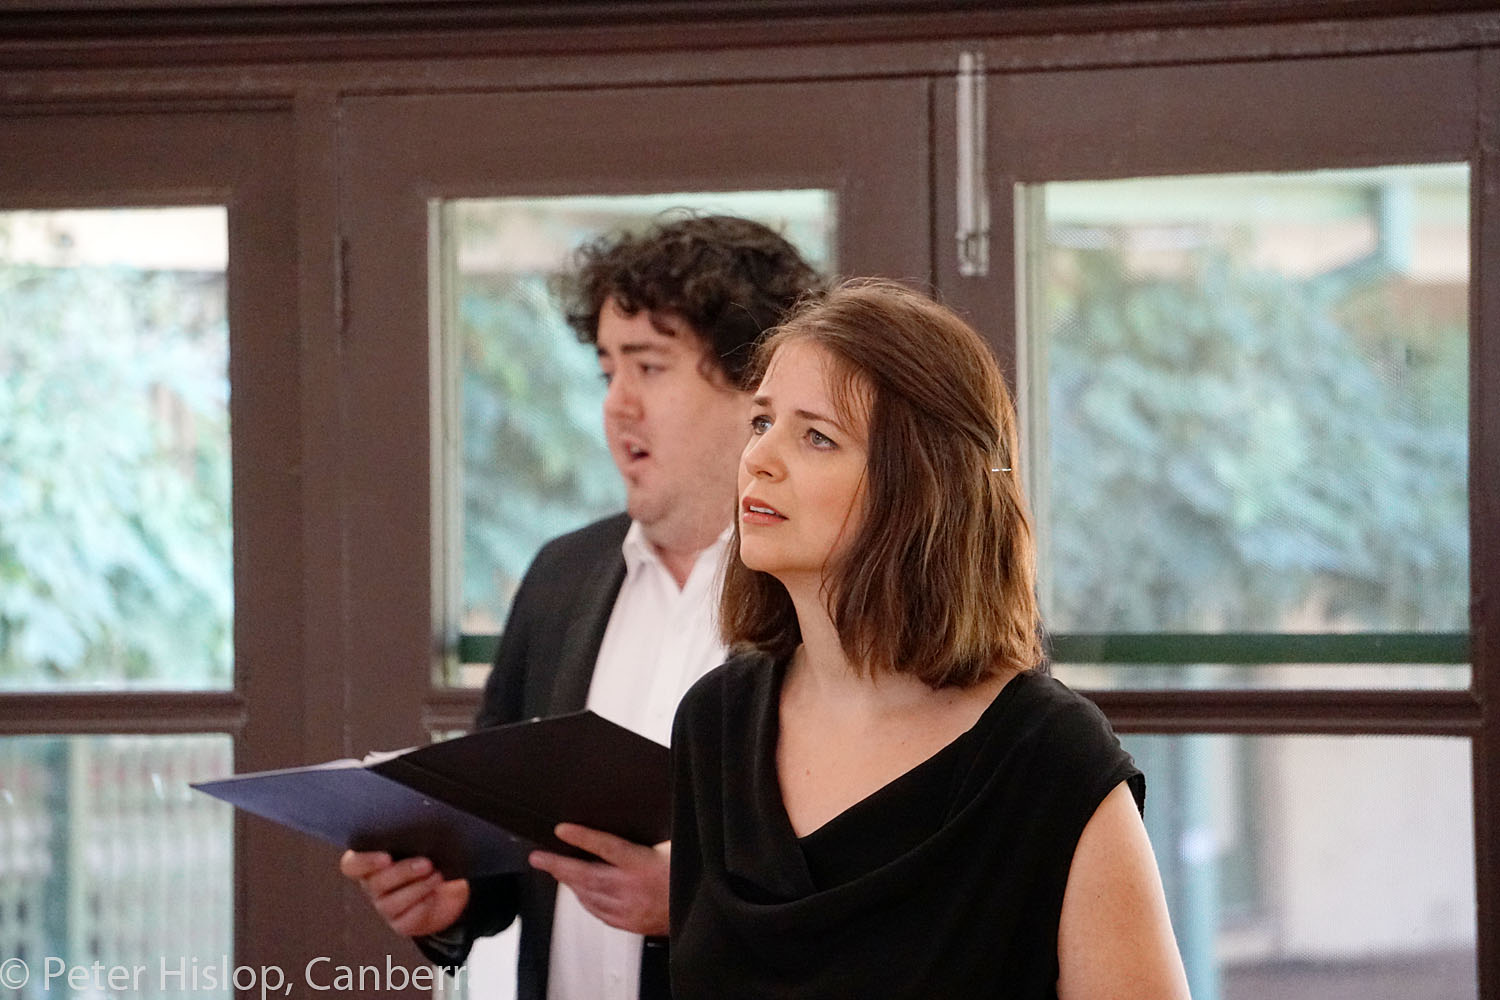 CIMF 2016 - Concert 12 - Braddons Bread and Games. Susannah Lawergren, Andrew O'Connor